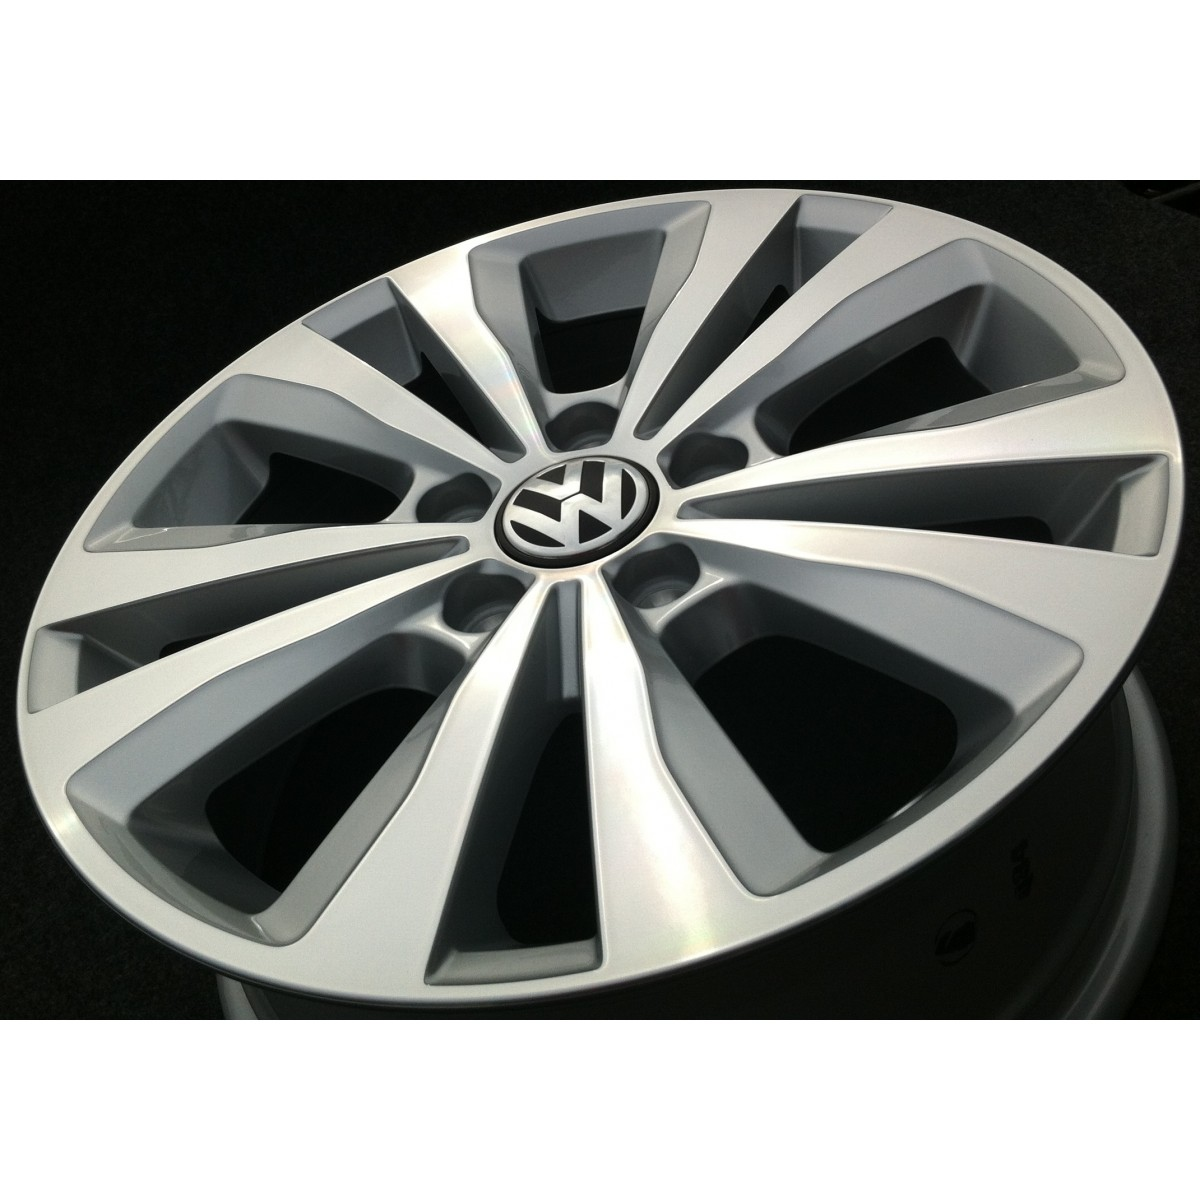 Img on 2000 vw jetta parts